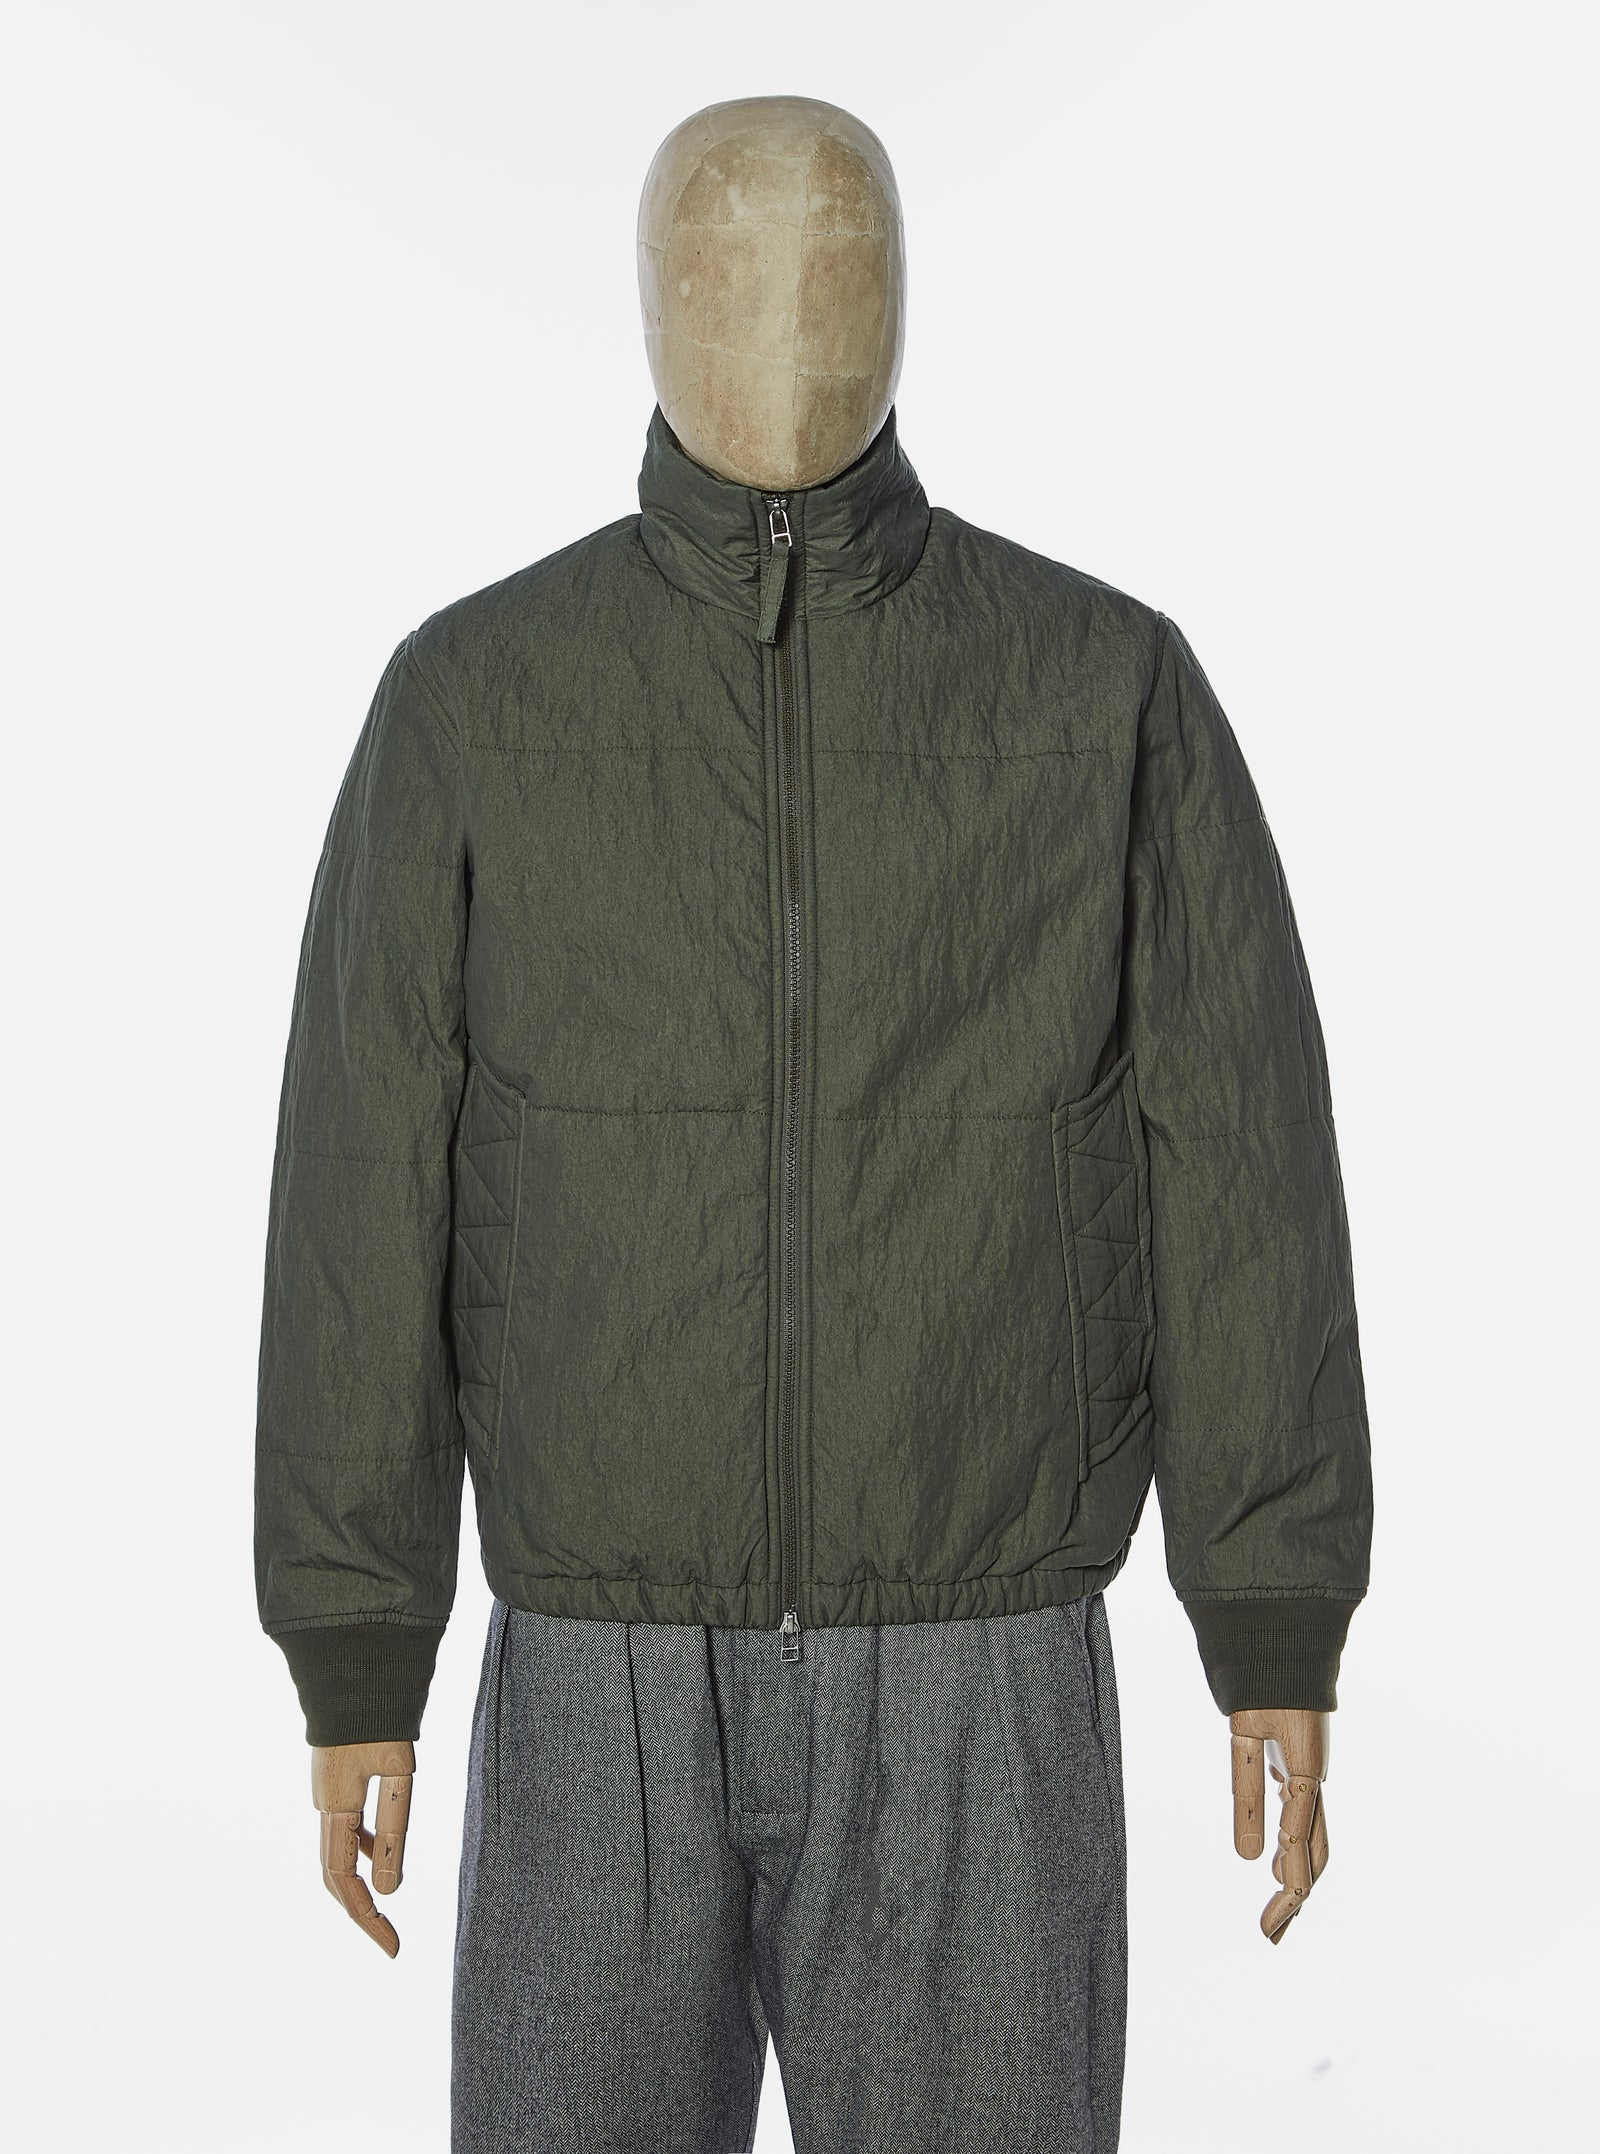 Universal Works Padded Jacket in Olive Washed 70/30